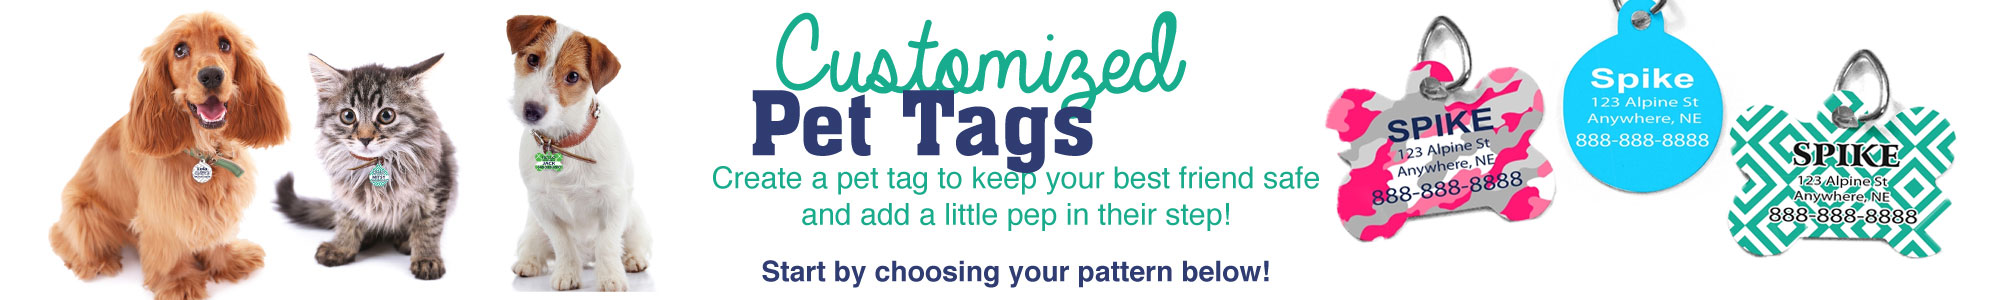 Customized pet tags. Create a pet tag to keep your best friend safe and add a little pep in their step.